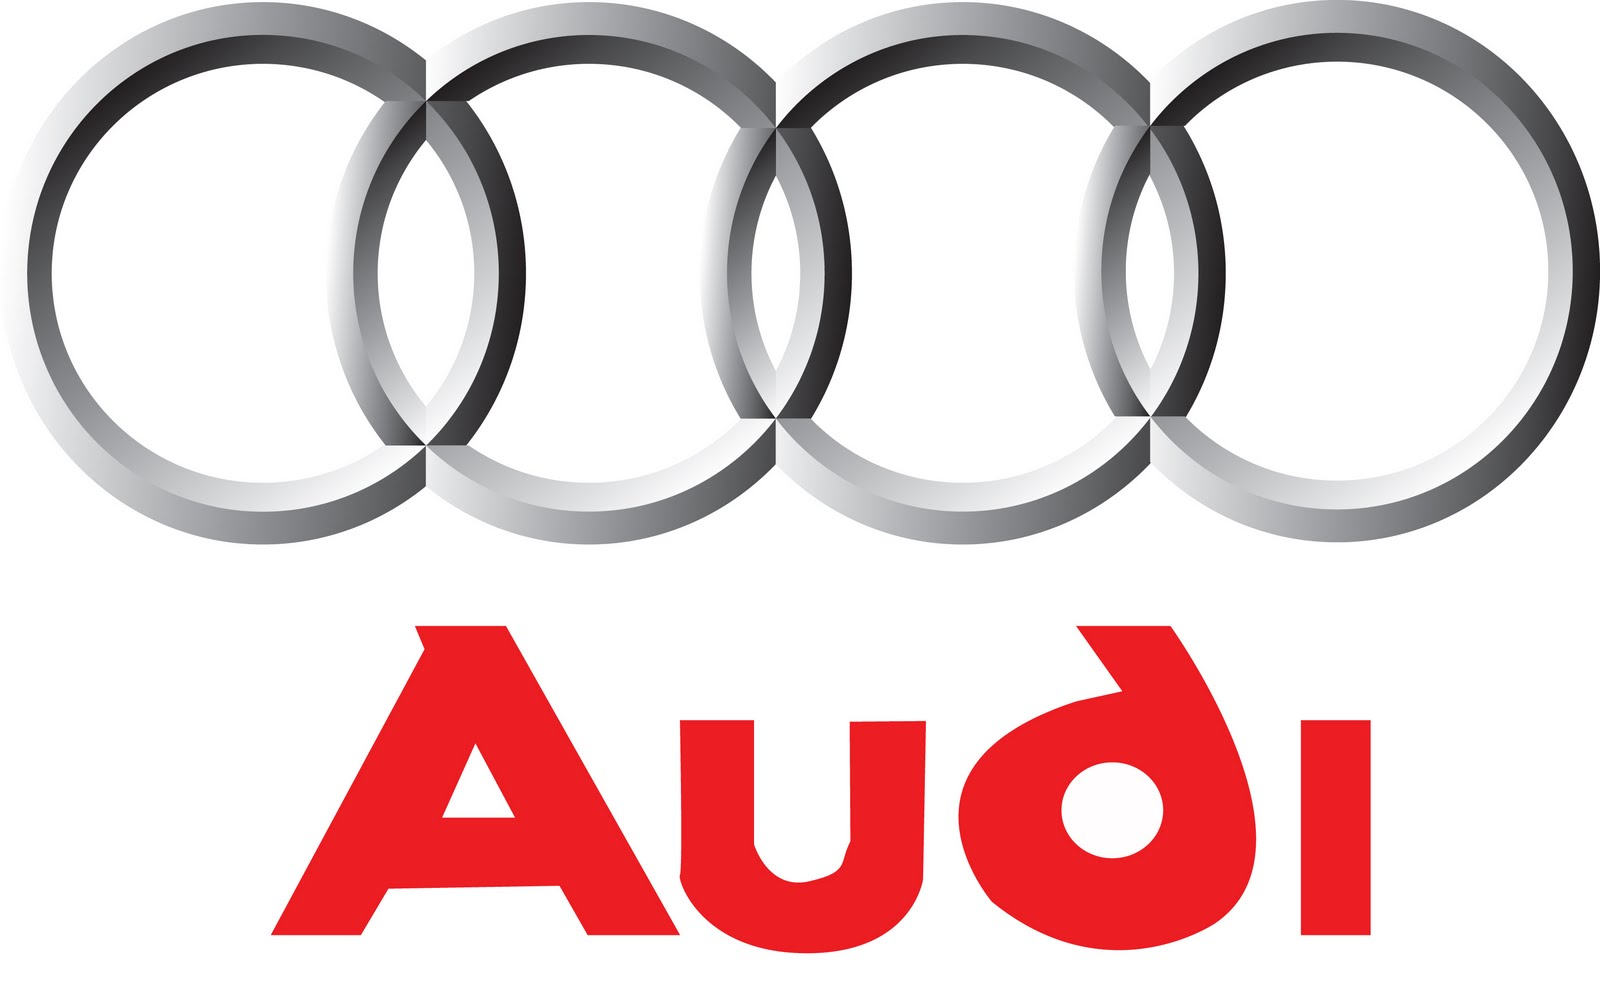 logos audi company logo - photo #27